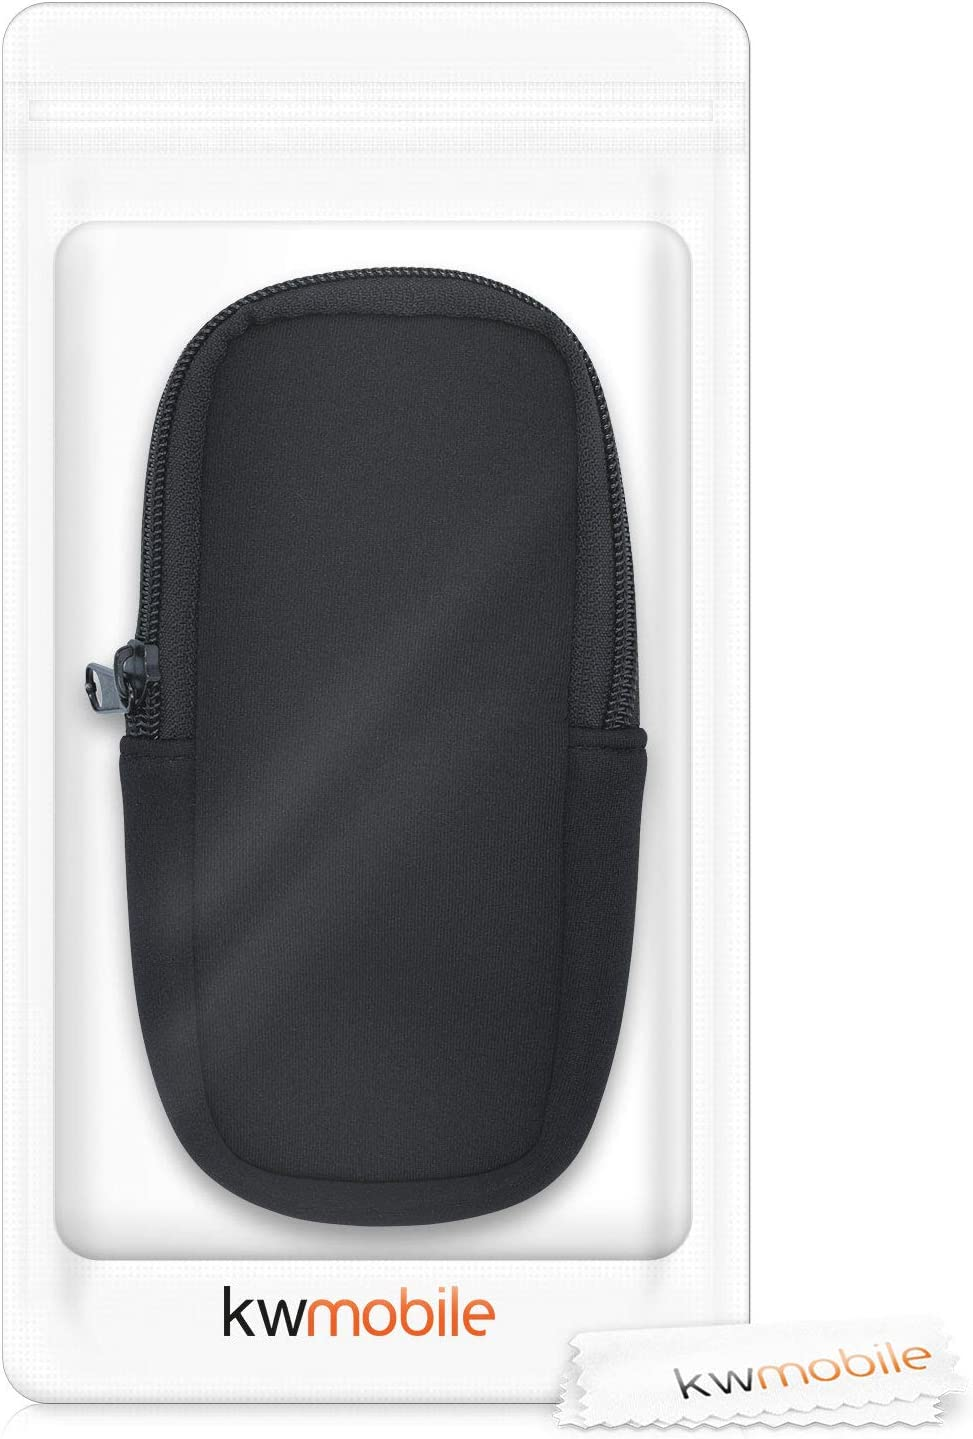 64x Protective Pouch for Handheld GPS Black kwmobile Soft Case Compatible with Garmin GPSMAP 64sx